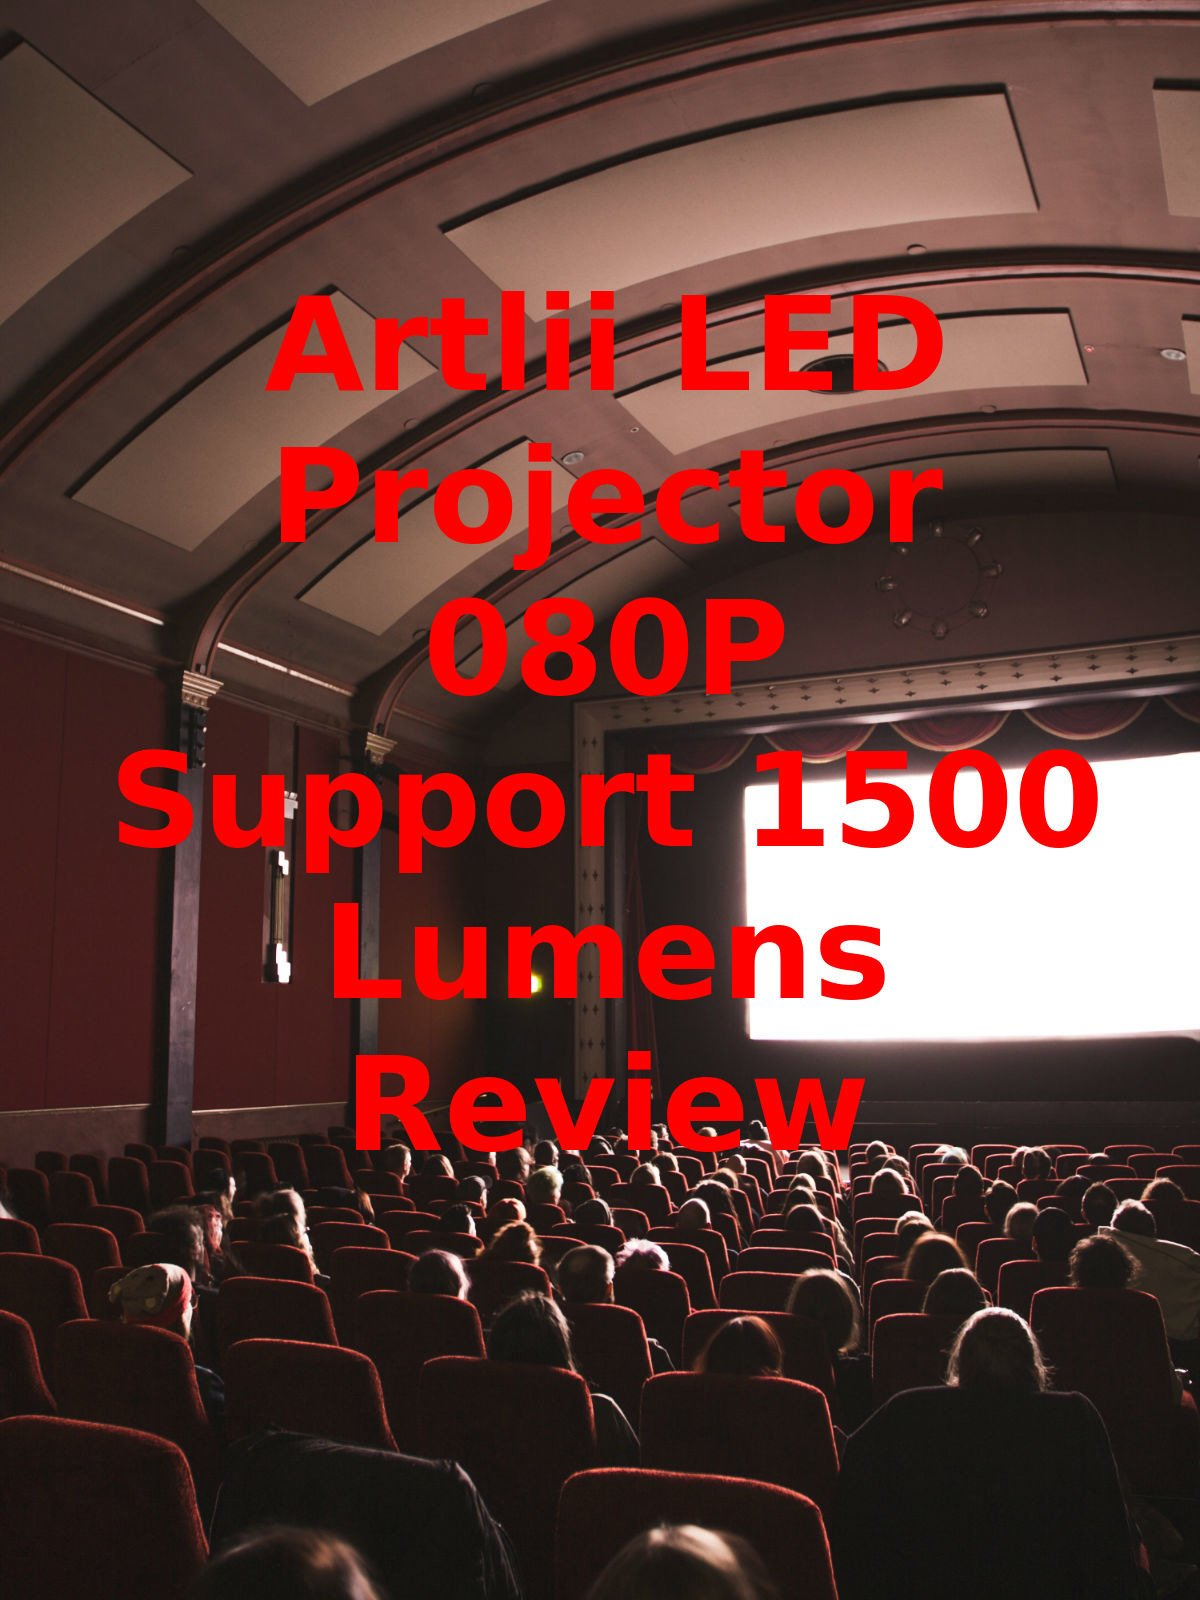 Review: Artlii LED Projector 1080P Support 1500 Lumens Review